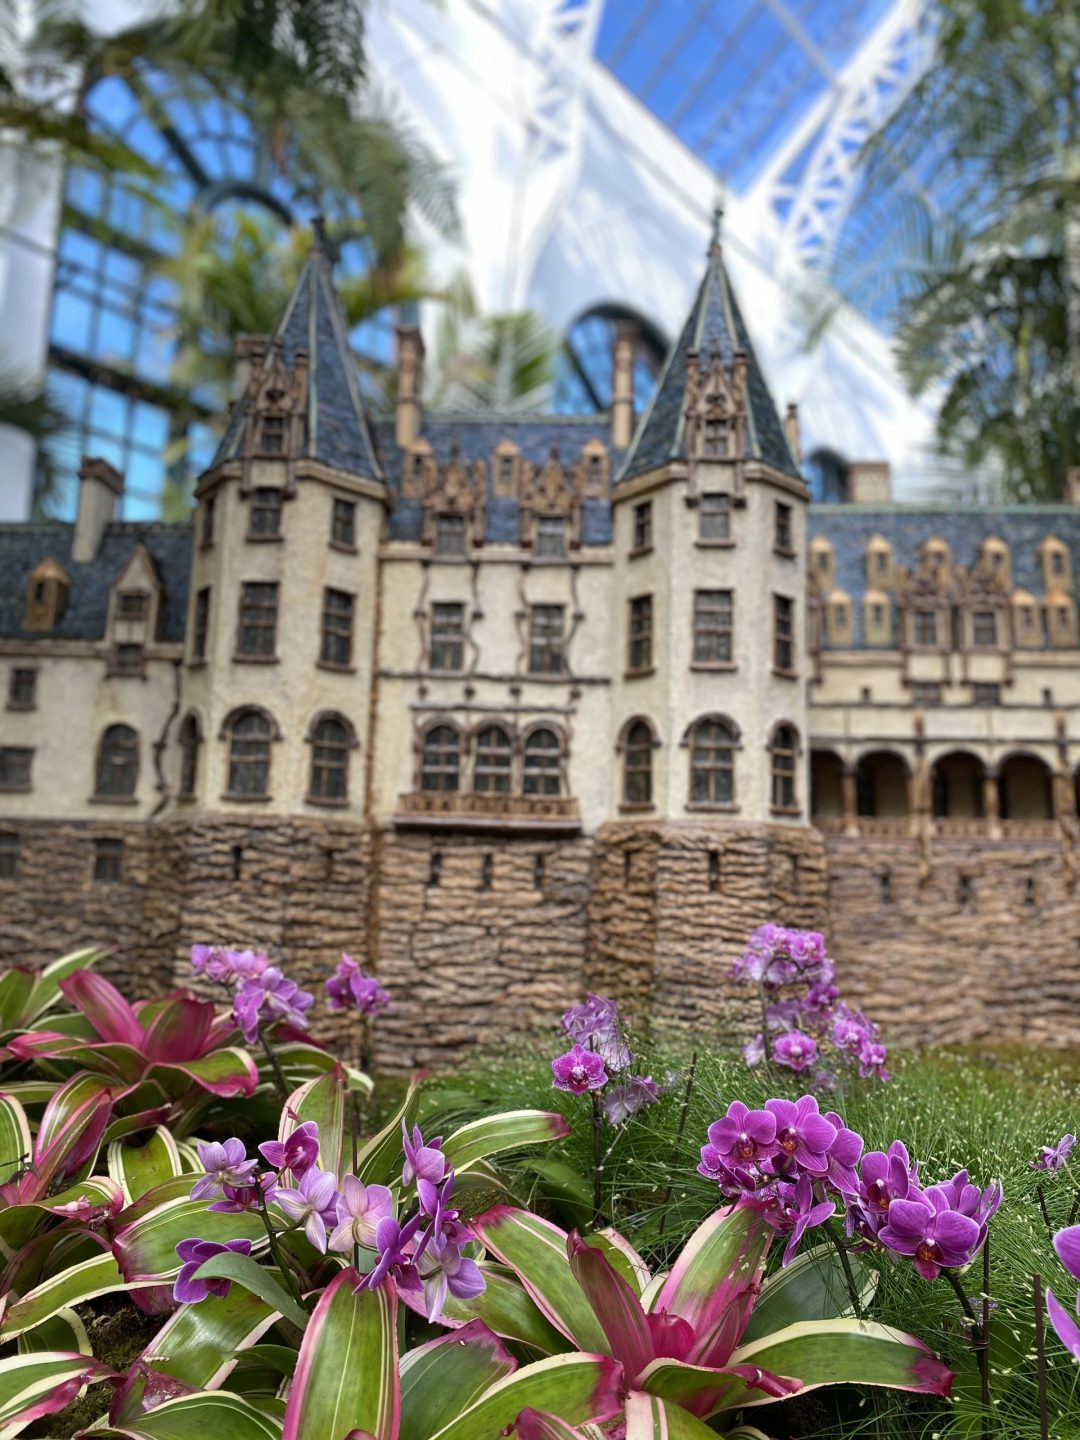 Purple flowers with Biltmore House replica in background